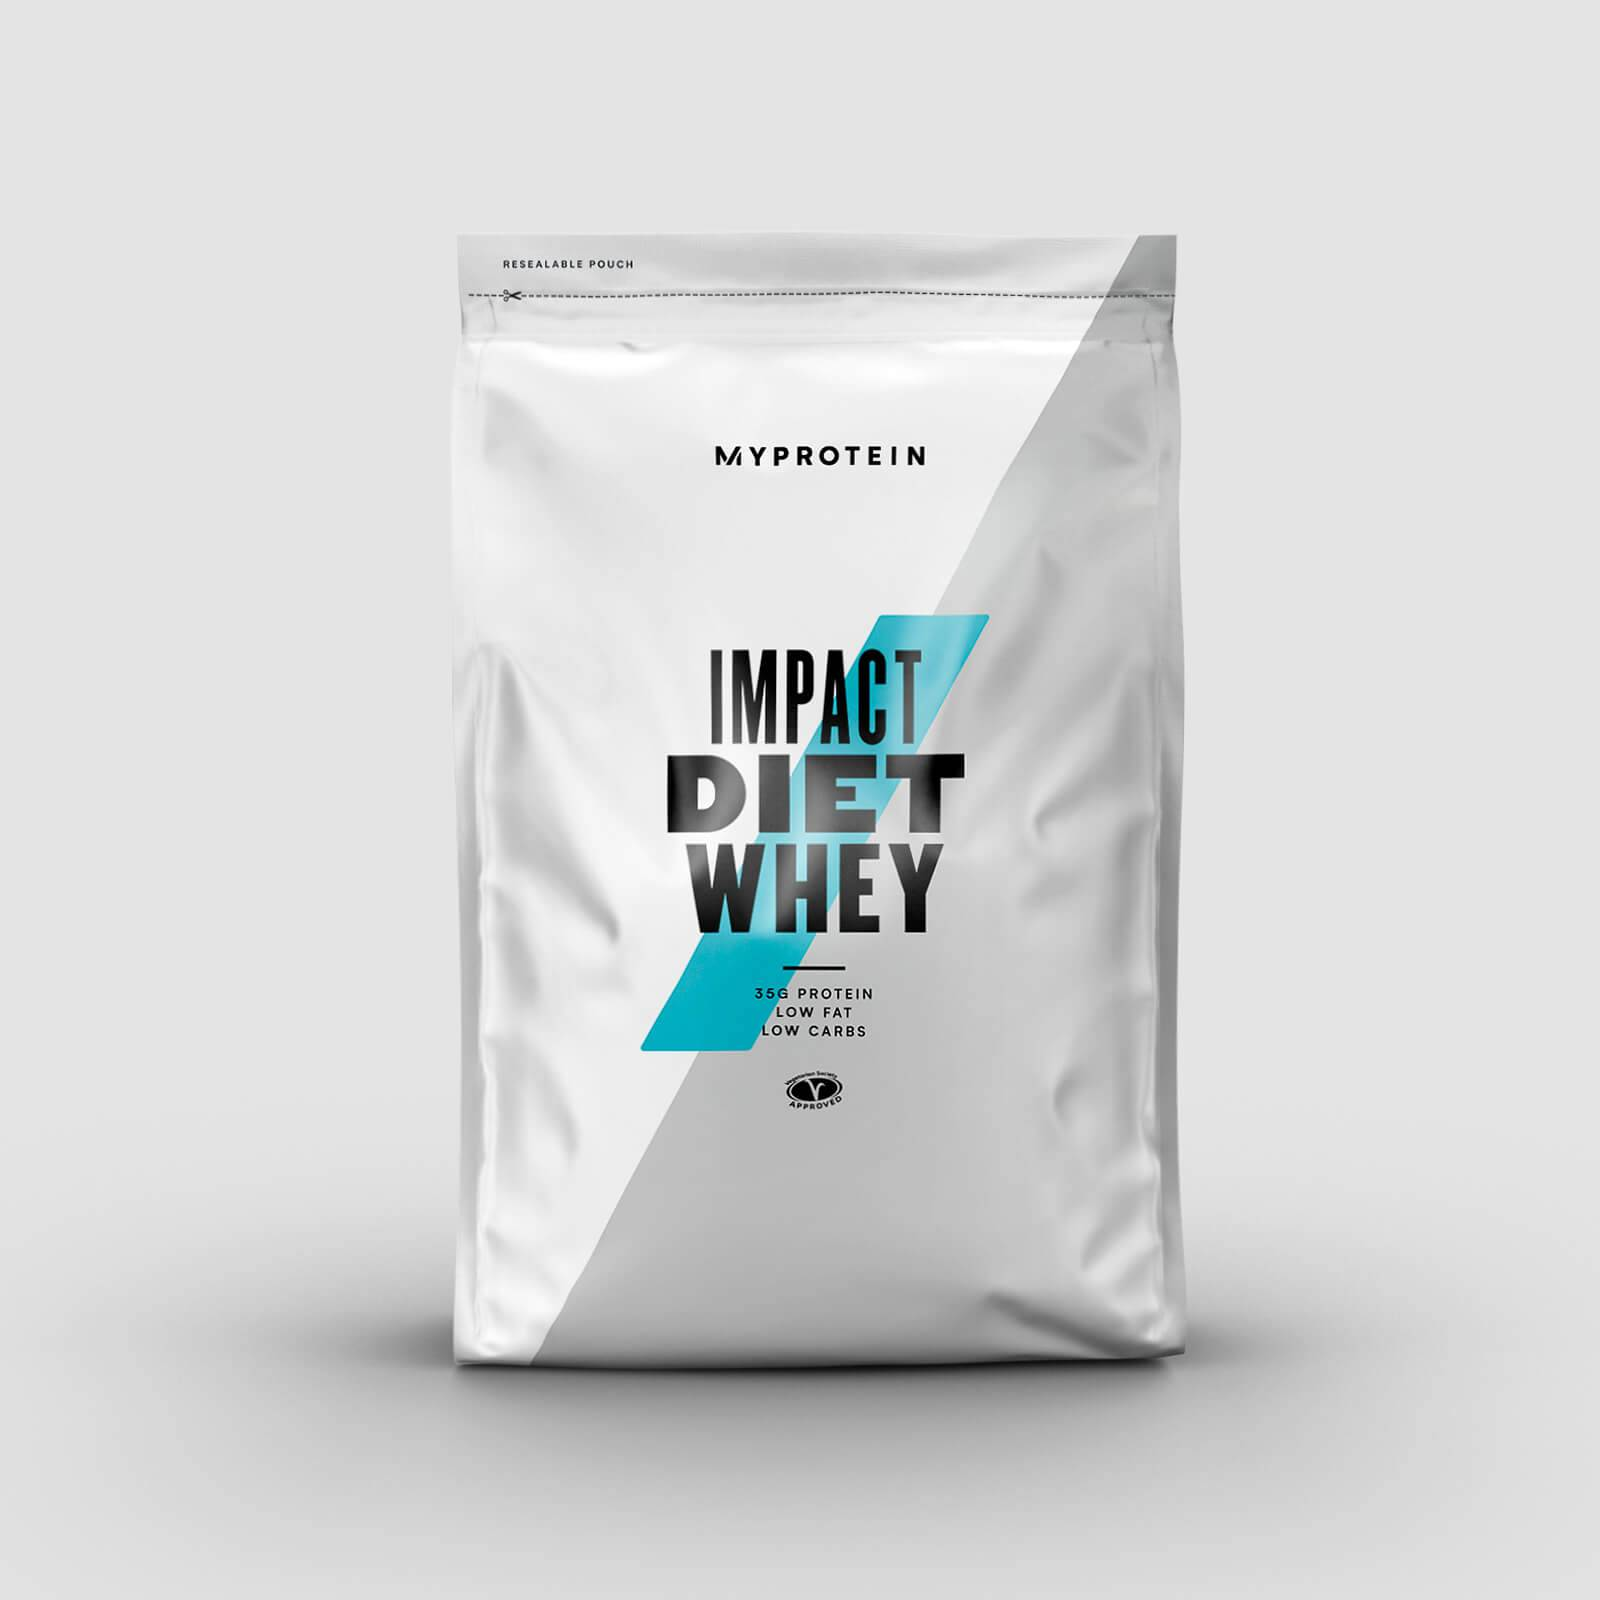 Myprotein Impact Diet Whey - 2.5kg - Cookies & Cream